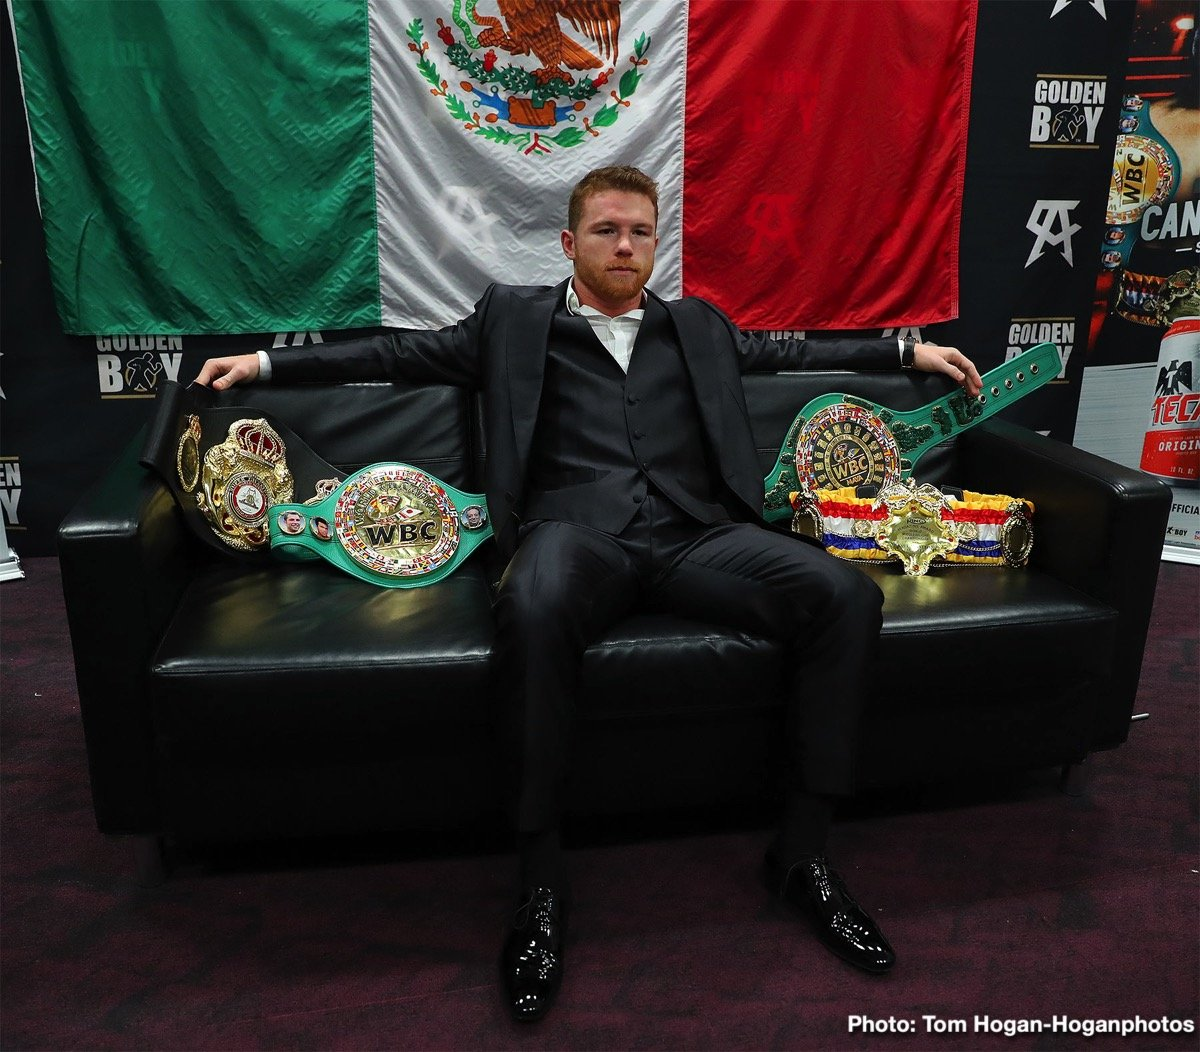 Canelo Alvarez - Though Mexican superstar Canelo Alvarez is deeply upset at the way he has been stripped of his IBF middleweight title due to no deal to face his mandatory challenger Sergiy Derevyanchenko being signed off on in time, we the fans might just benefit from these turn of events. Canelo is still looking to fight in October, as is his former rival, former 160 pound king Gennady Golovkin.